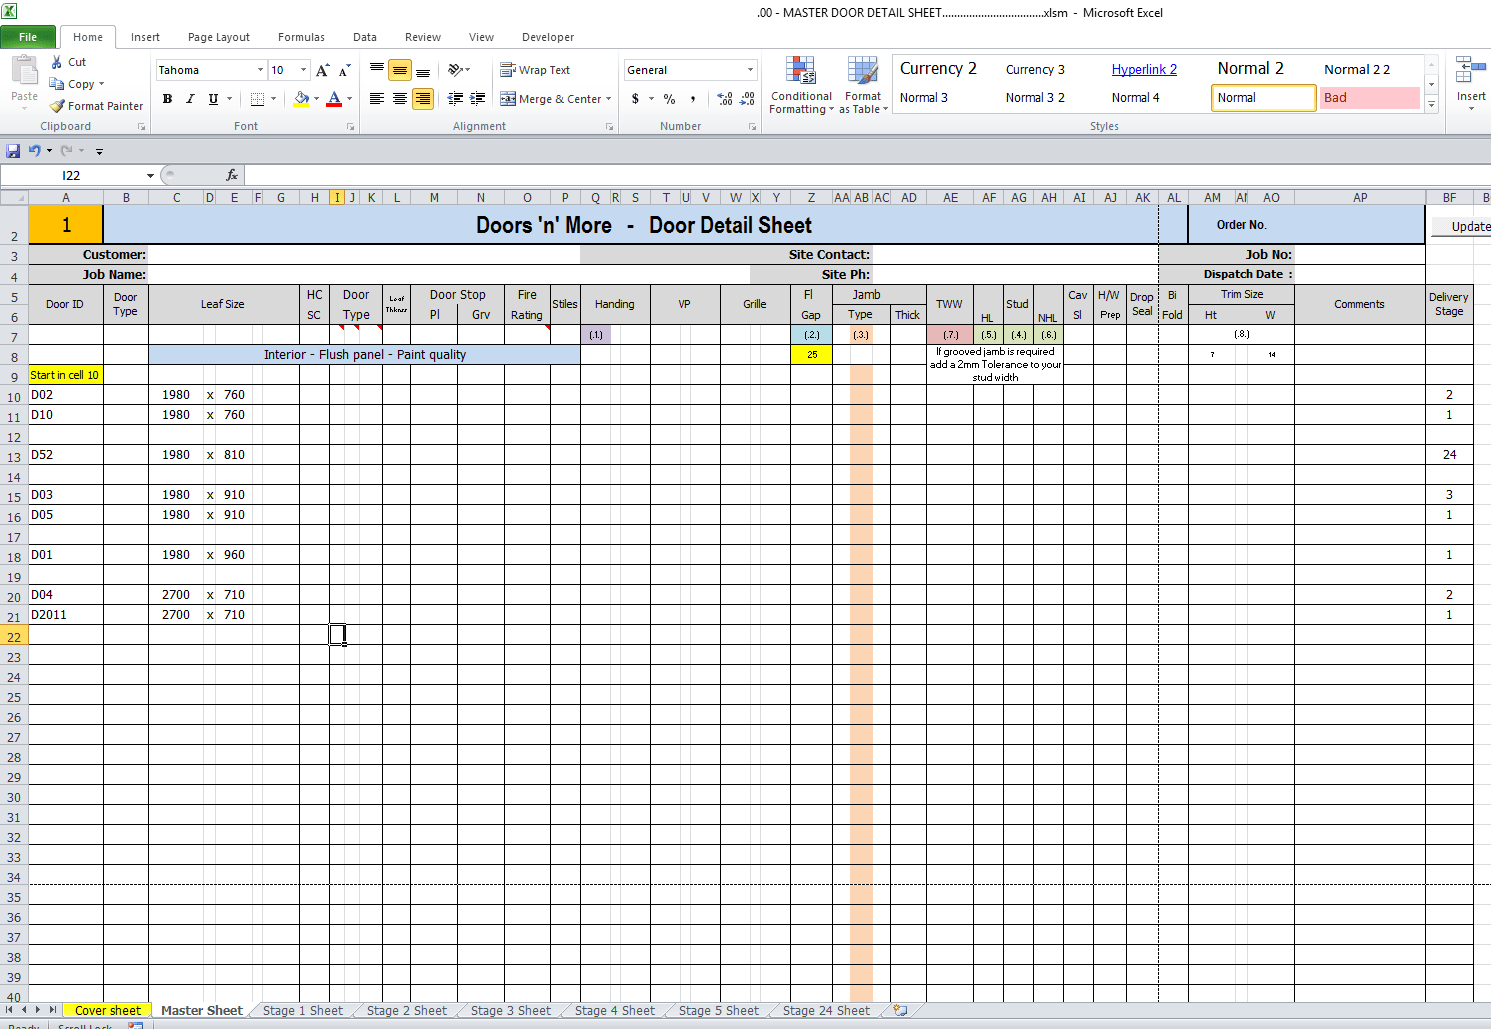 Excel Vba Based On Values In One Column Choose Whether To